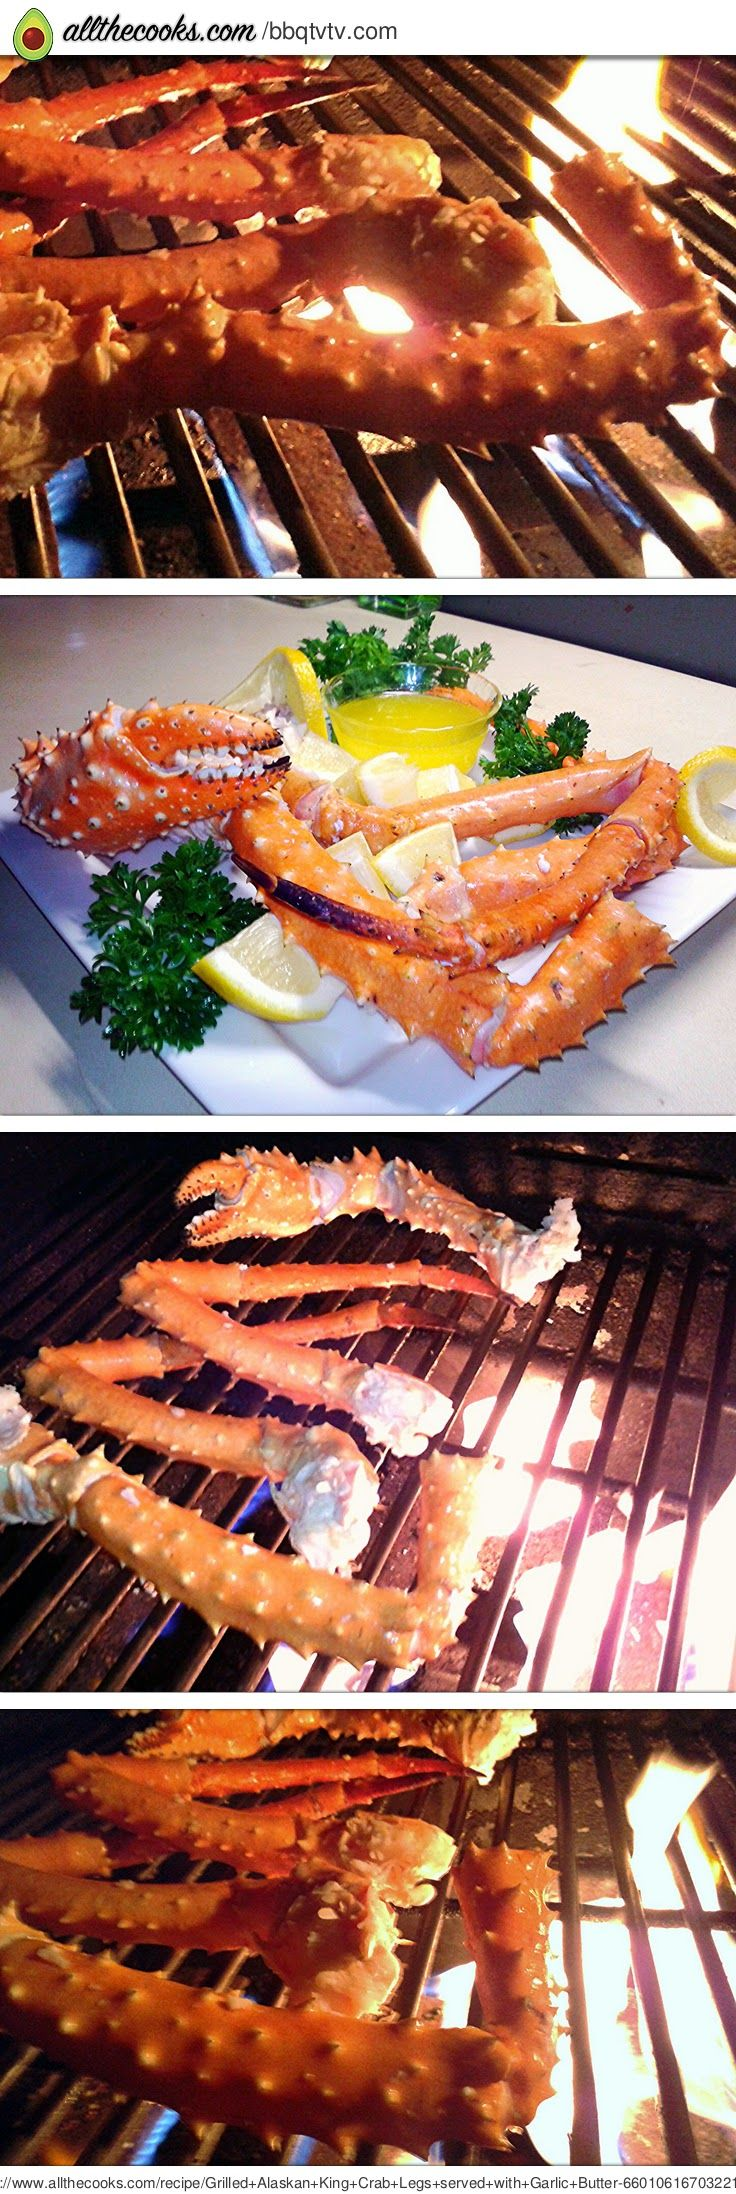 "Grilled Alaskan King Crab Legs served with Garlic Butter.! 5.00 stars, 6 reviews. ""A fast, easy and elegant dinner for your next outdoor party."" @allthecooks #recipe"